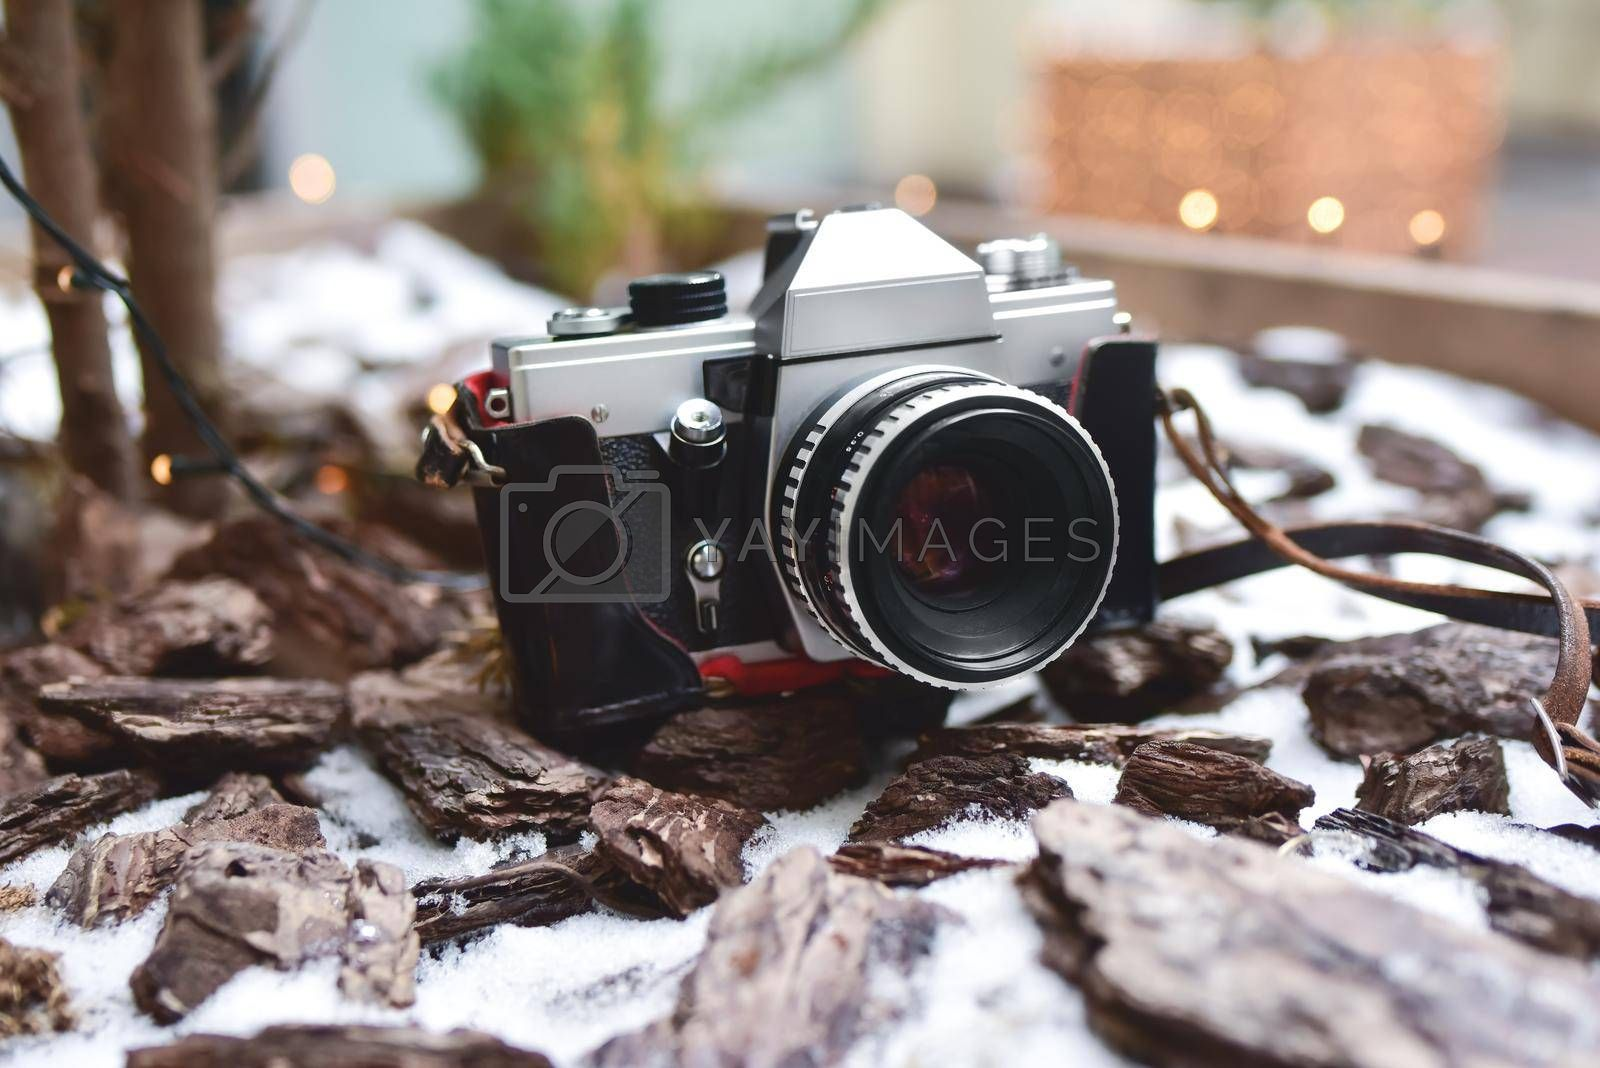 A single, old, retro photo camera it stay on the snowy ground.